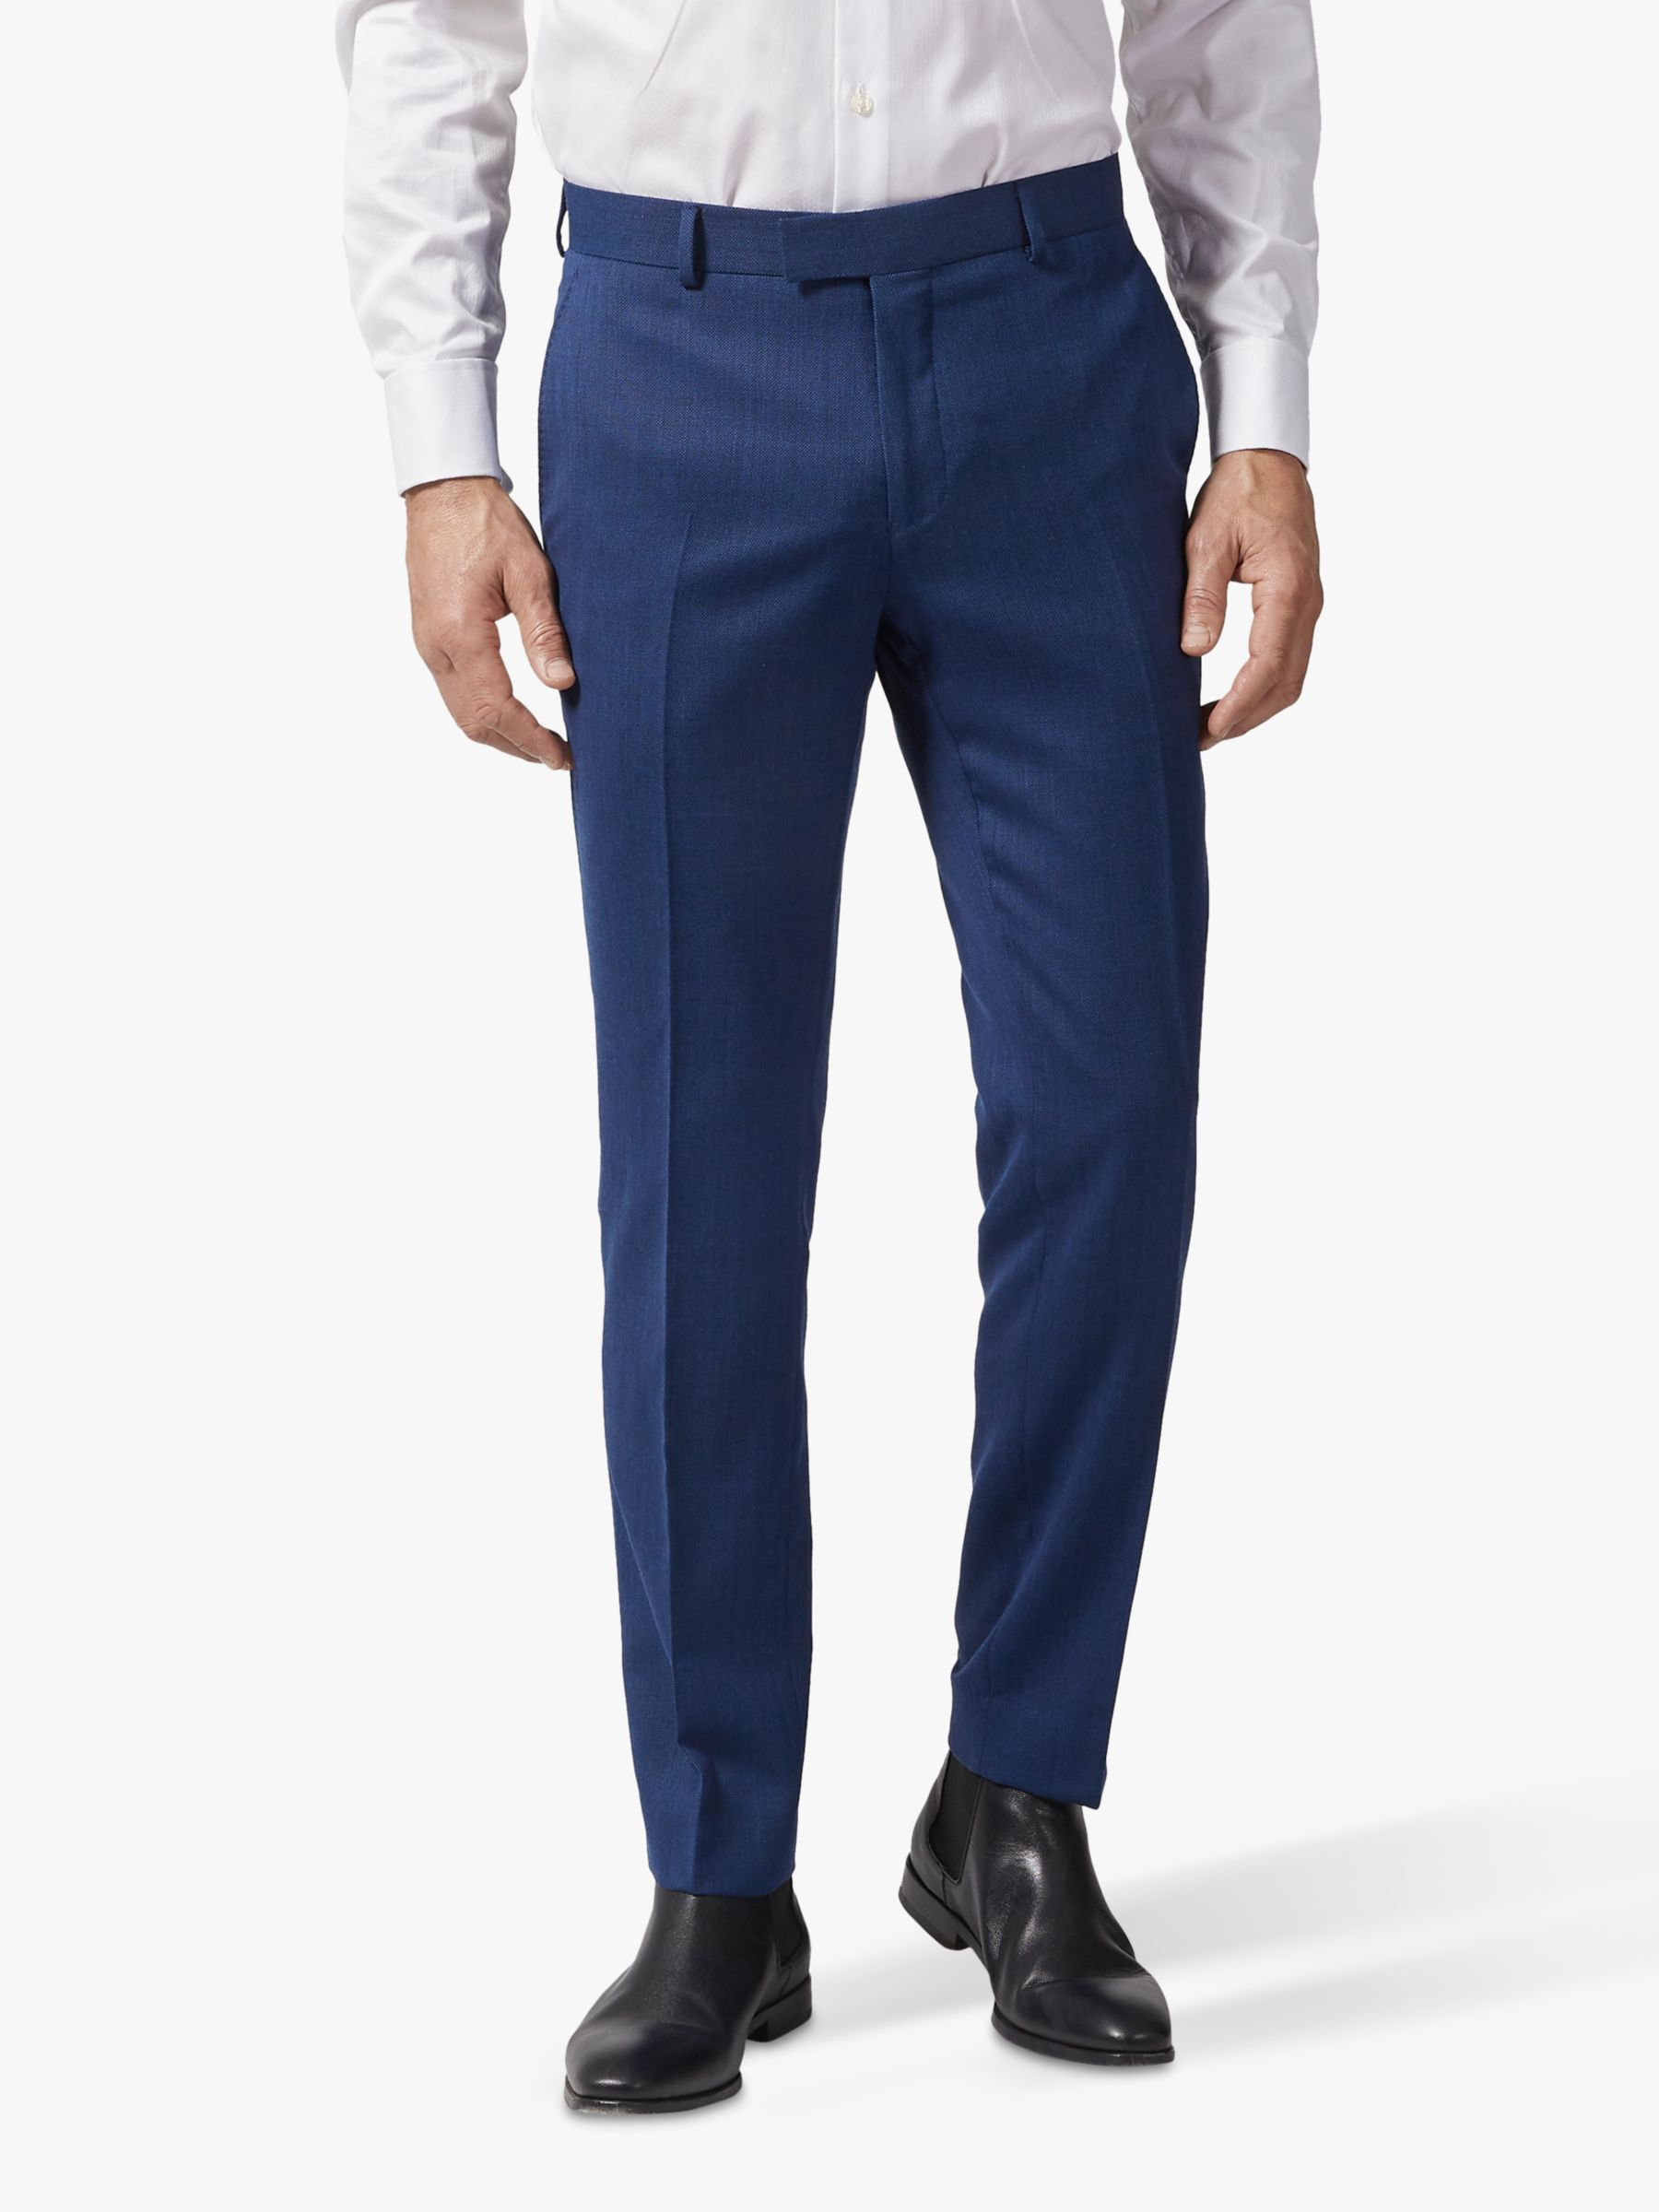 Richard James Mayfair Richard James Mayfair Geo Wool Tailored Suit Trousers, Dark Blue